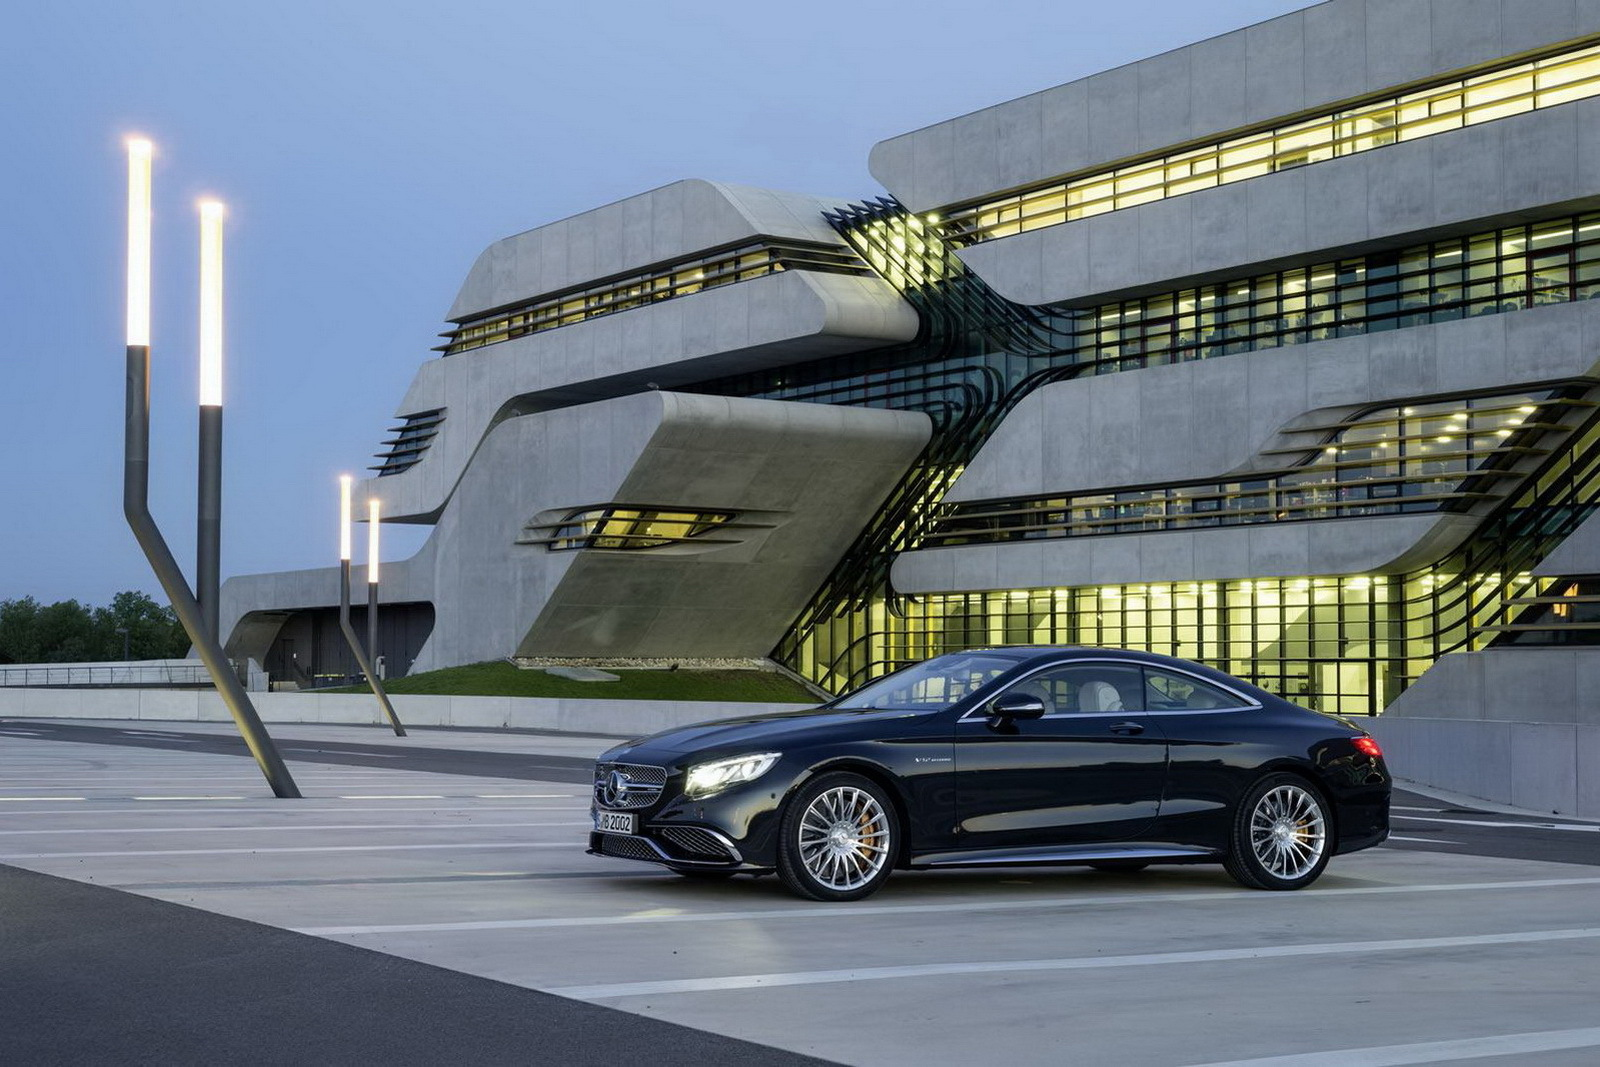 2018 Mercedes Benz S65 AMG Coupe photo - 1